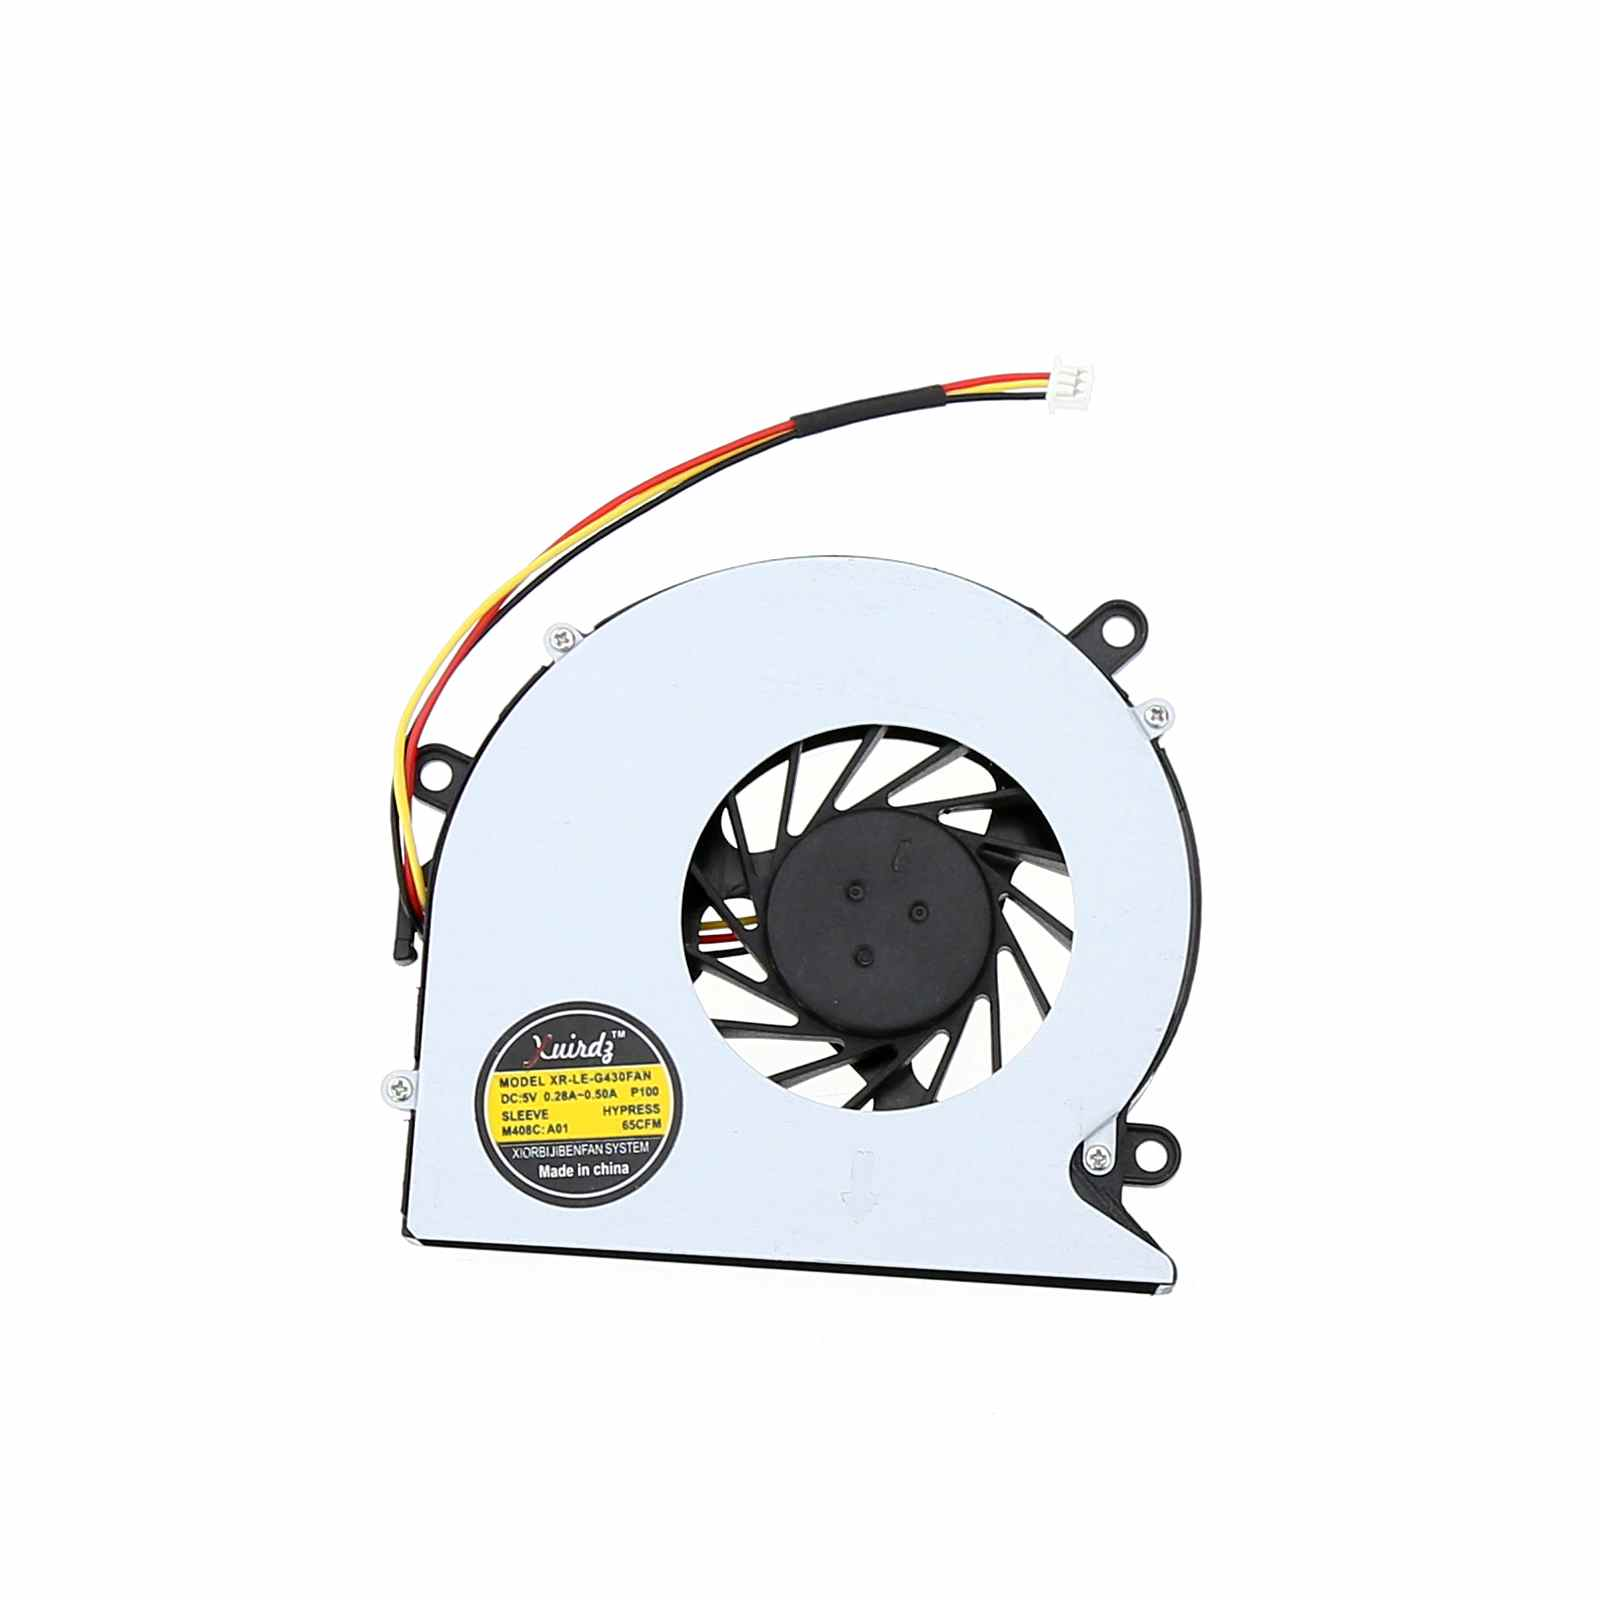 Brand New and original CPU cooling fan for Acer Aspire 5520 5315 5220 5520 5720 7220 7520 7720 laptop fan шина sturm sb 1858325 poh